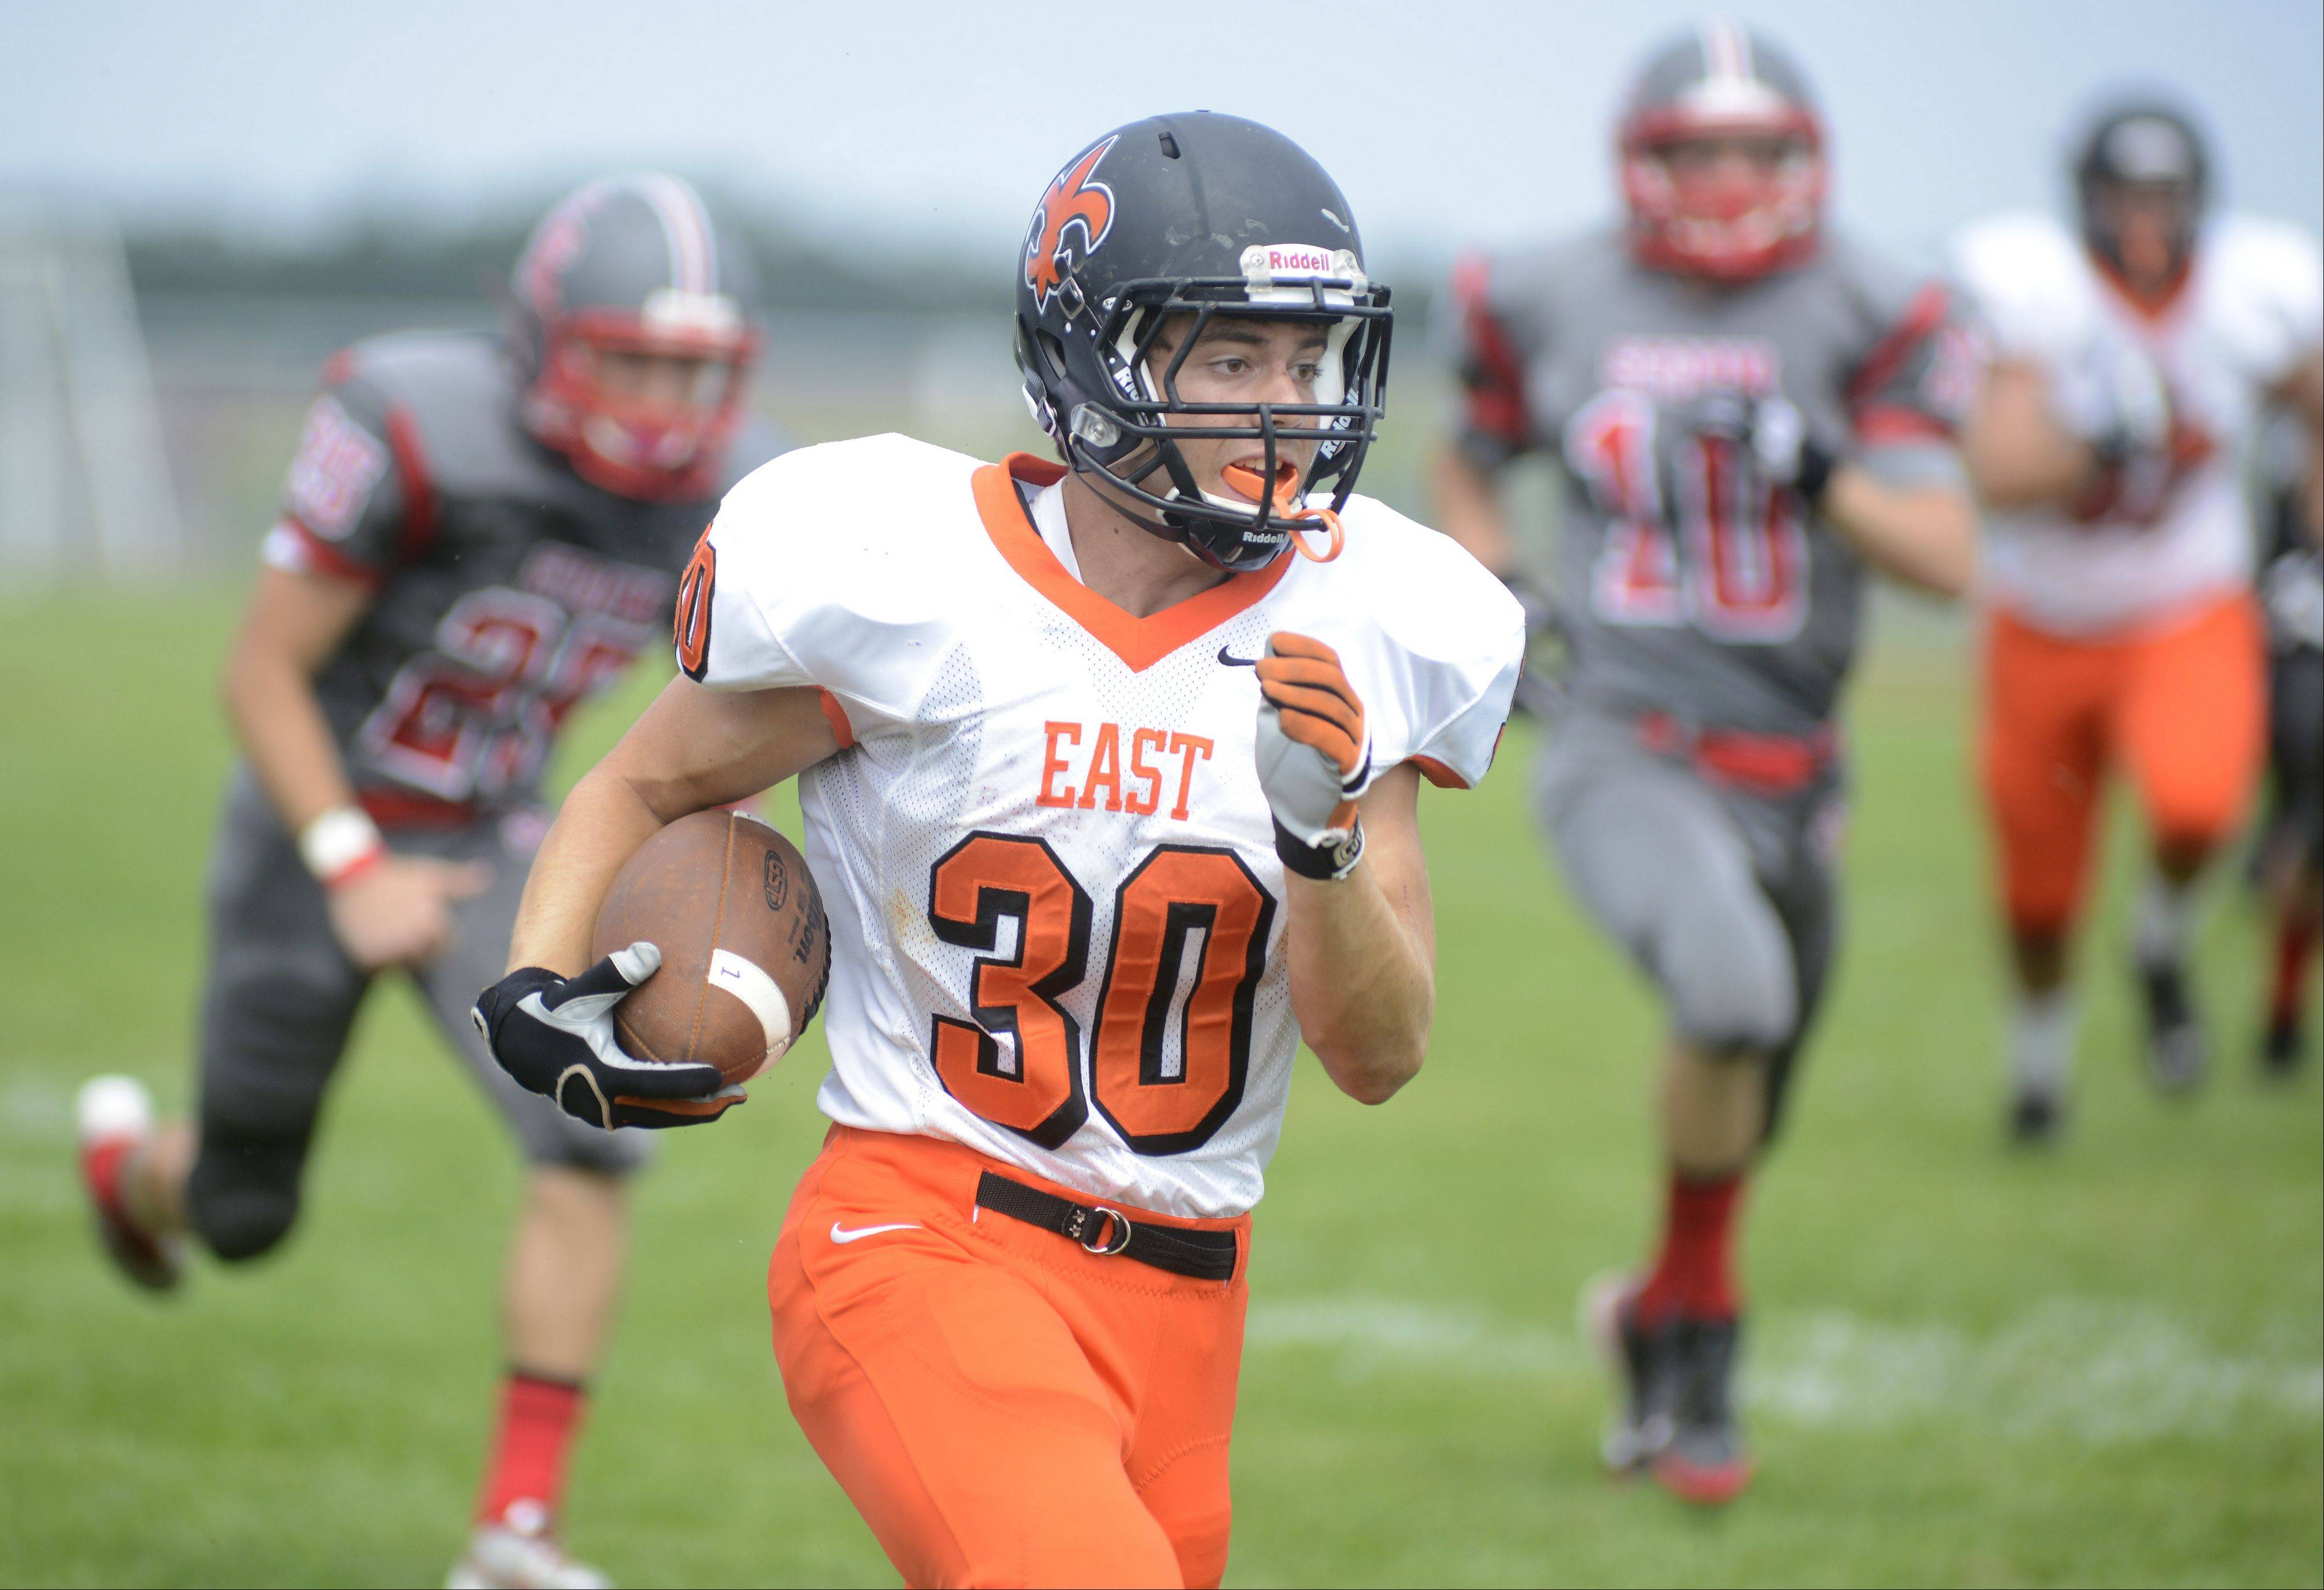 St. Charles East's Mitch Munroe runs down the sideline on his way to making the first touchdown of the game in the first quarter vs. South Elgin on Saturday, August 31.